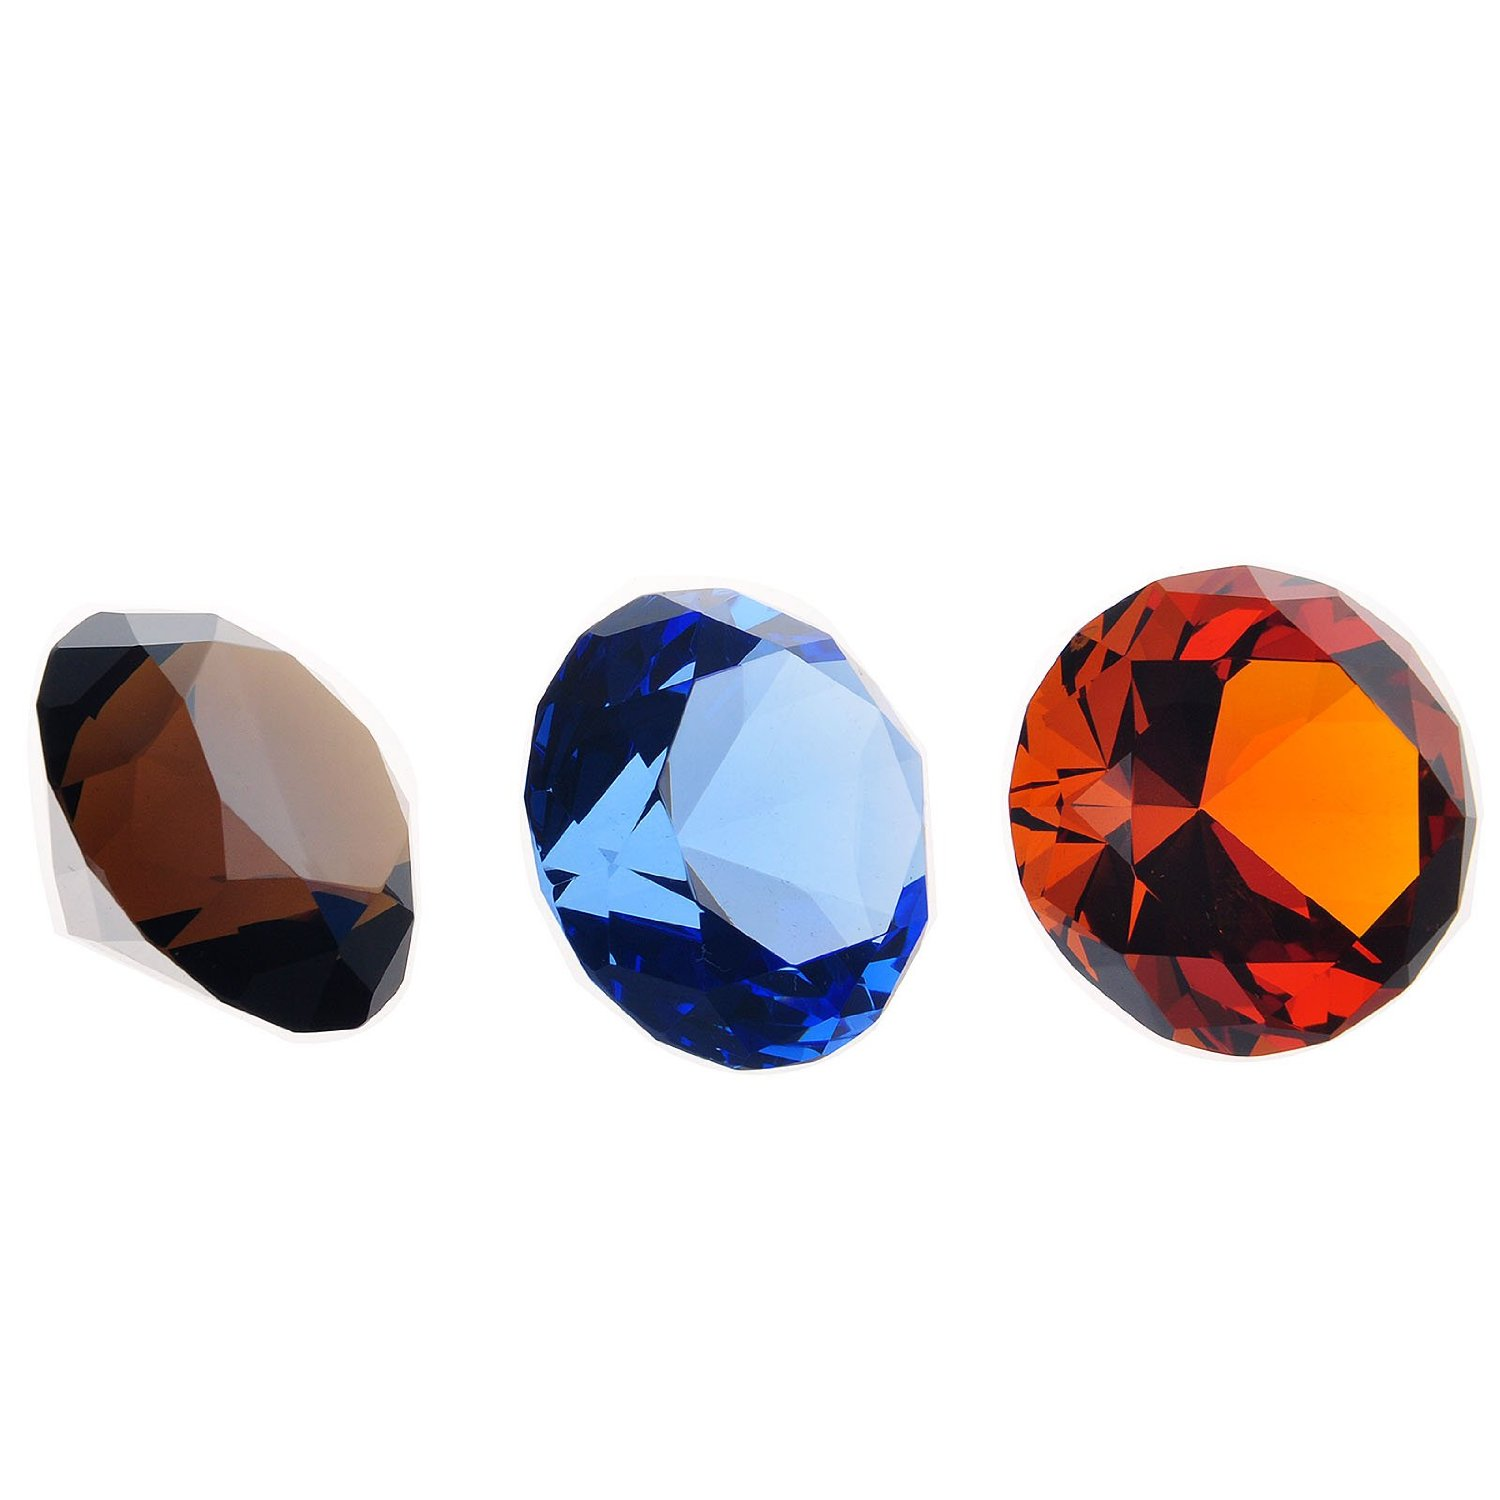 H&D 40mm 3pcs Diamond Glass Shaped Wedding Table Decorations Paperweight with Gift Box (black & blue & red)